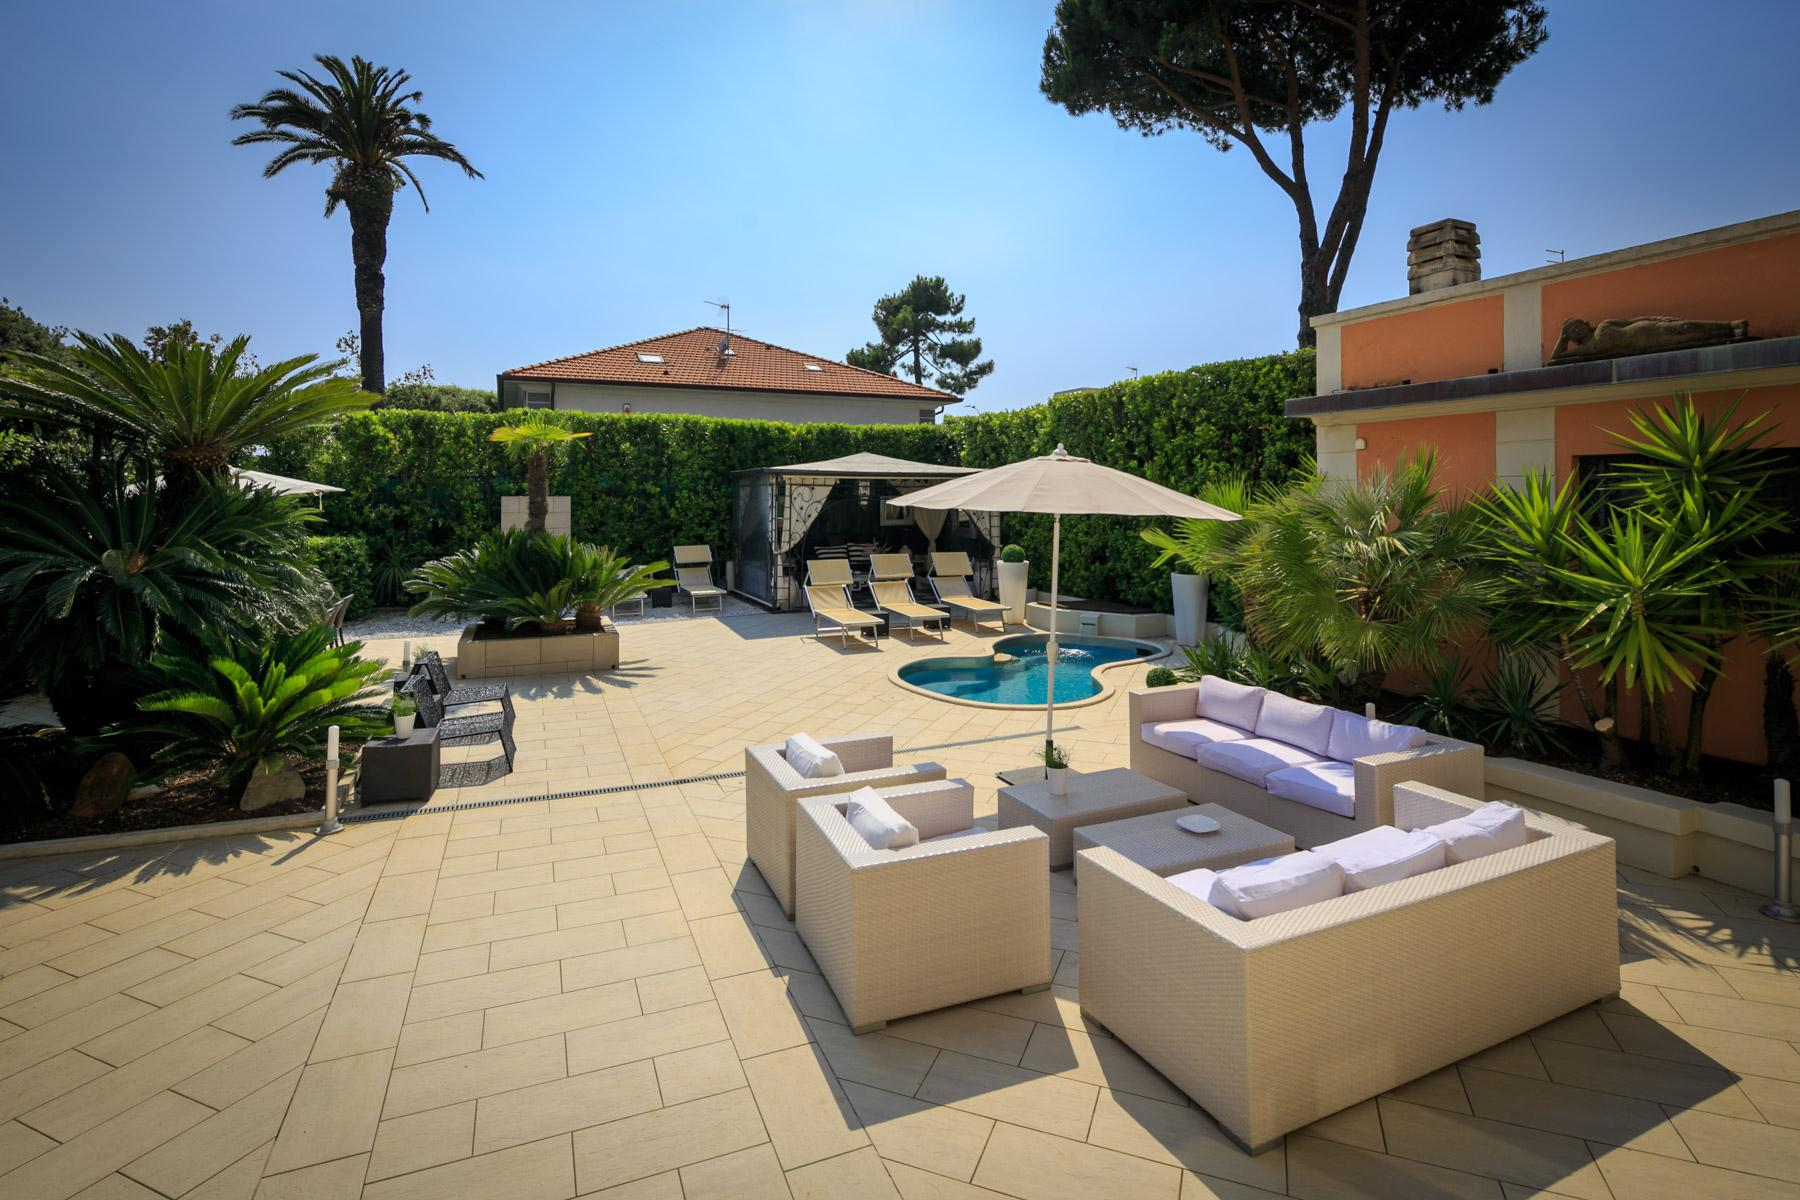 Seafront Villa with tower in Forte dei Marmi - 27